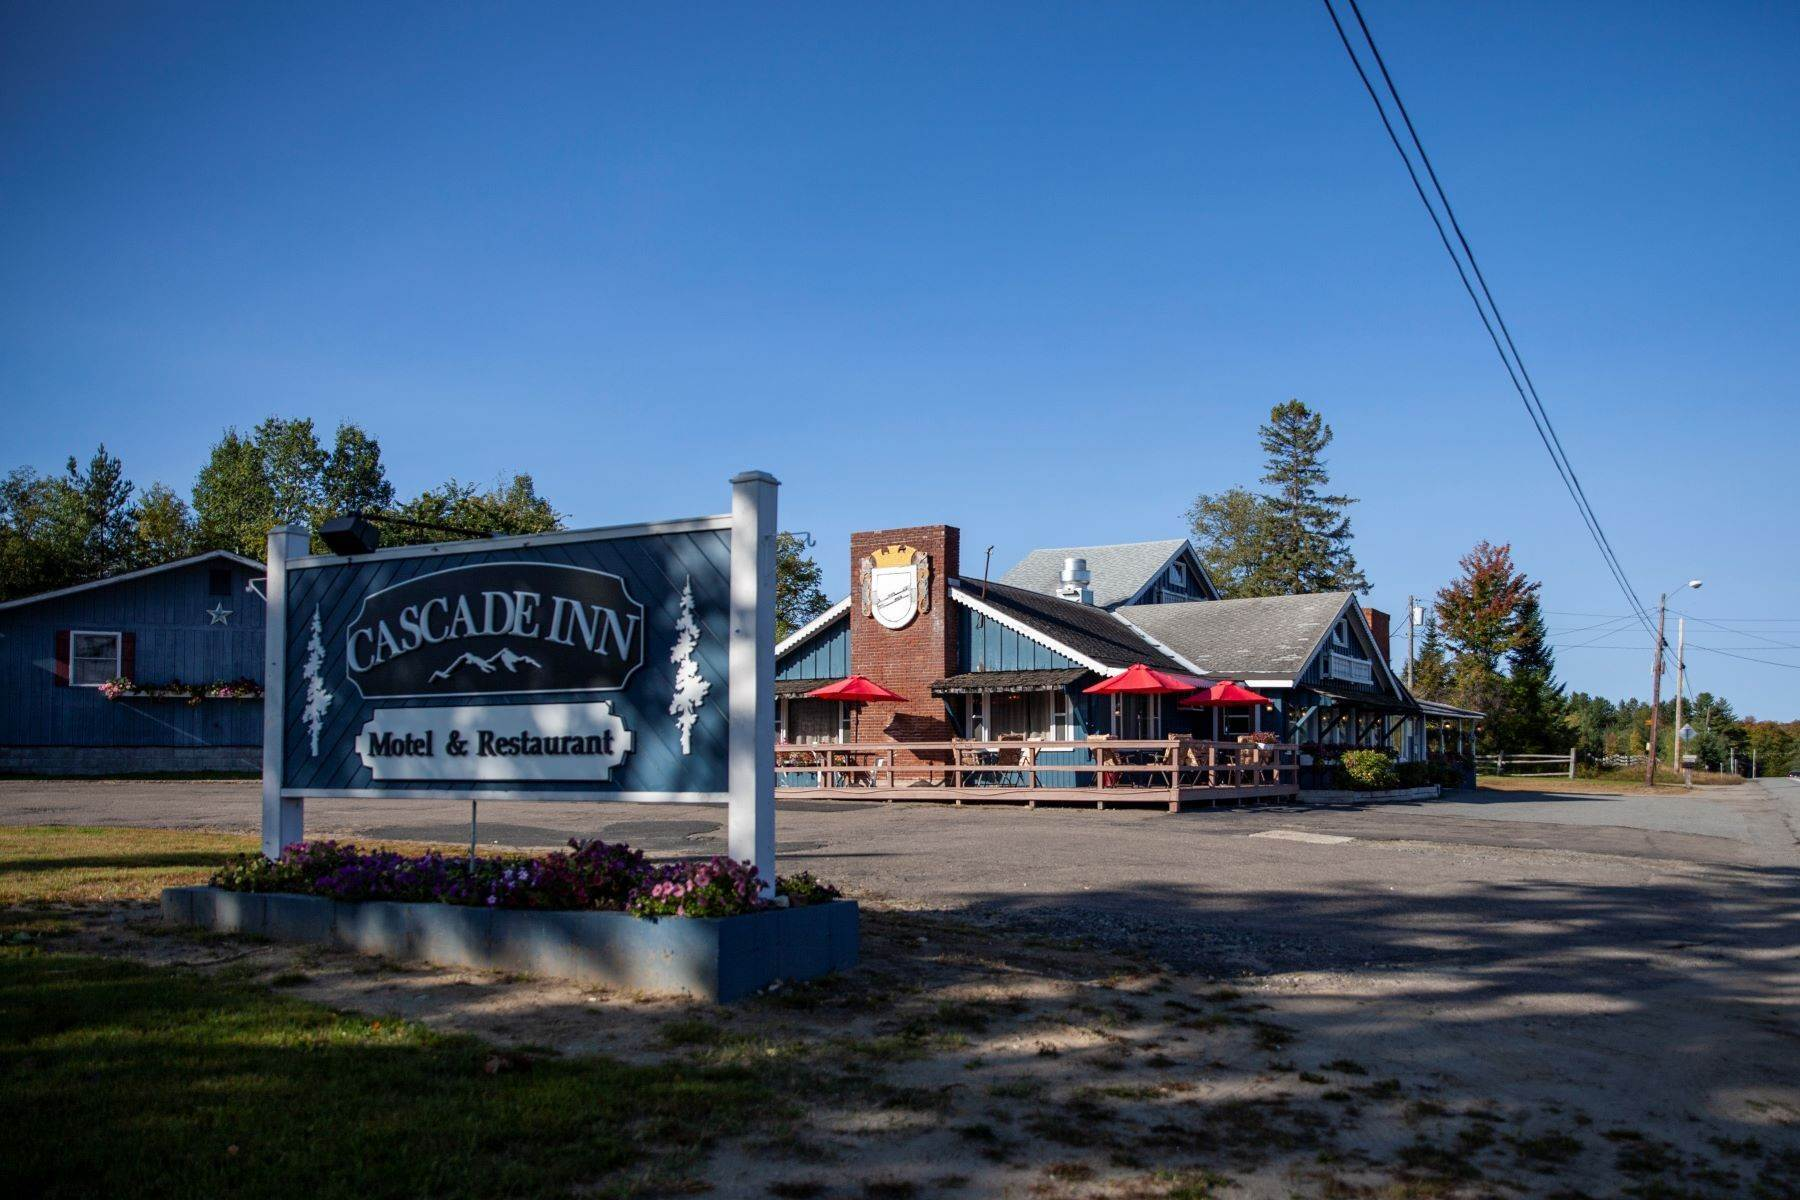 Property for Sale at Cascade Inn 5023 Cascade Road Lake Placid, New York 12946 United States